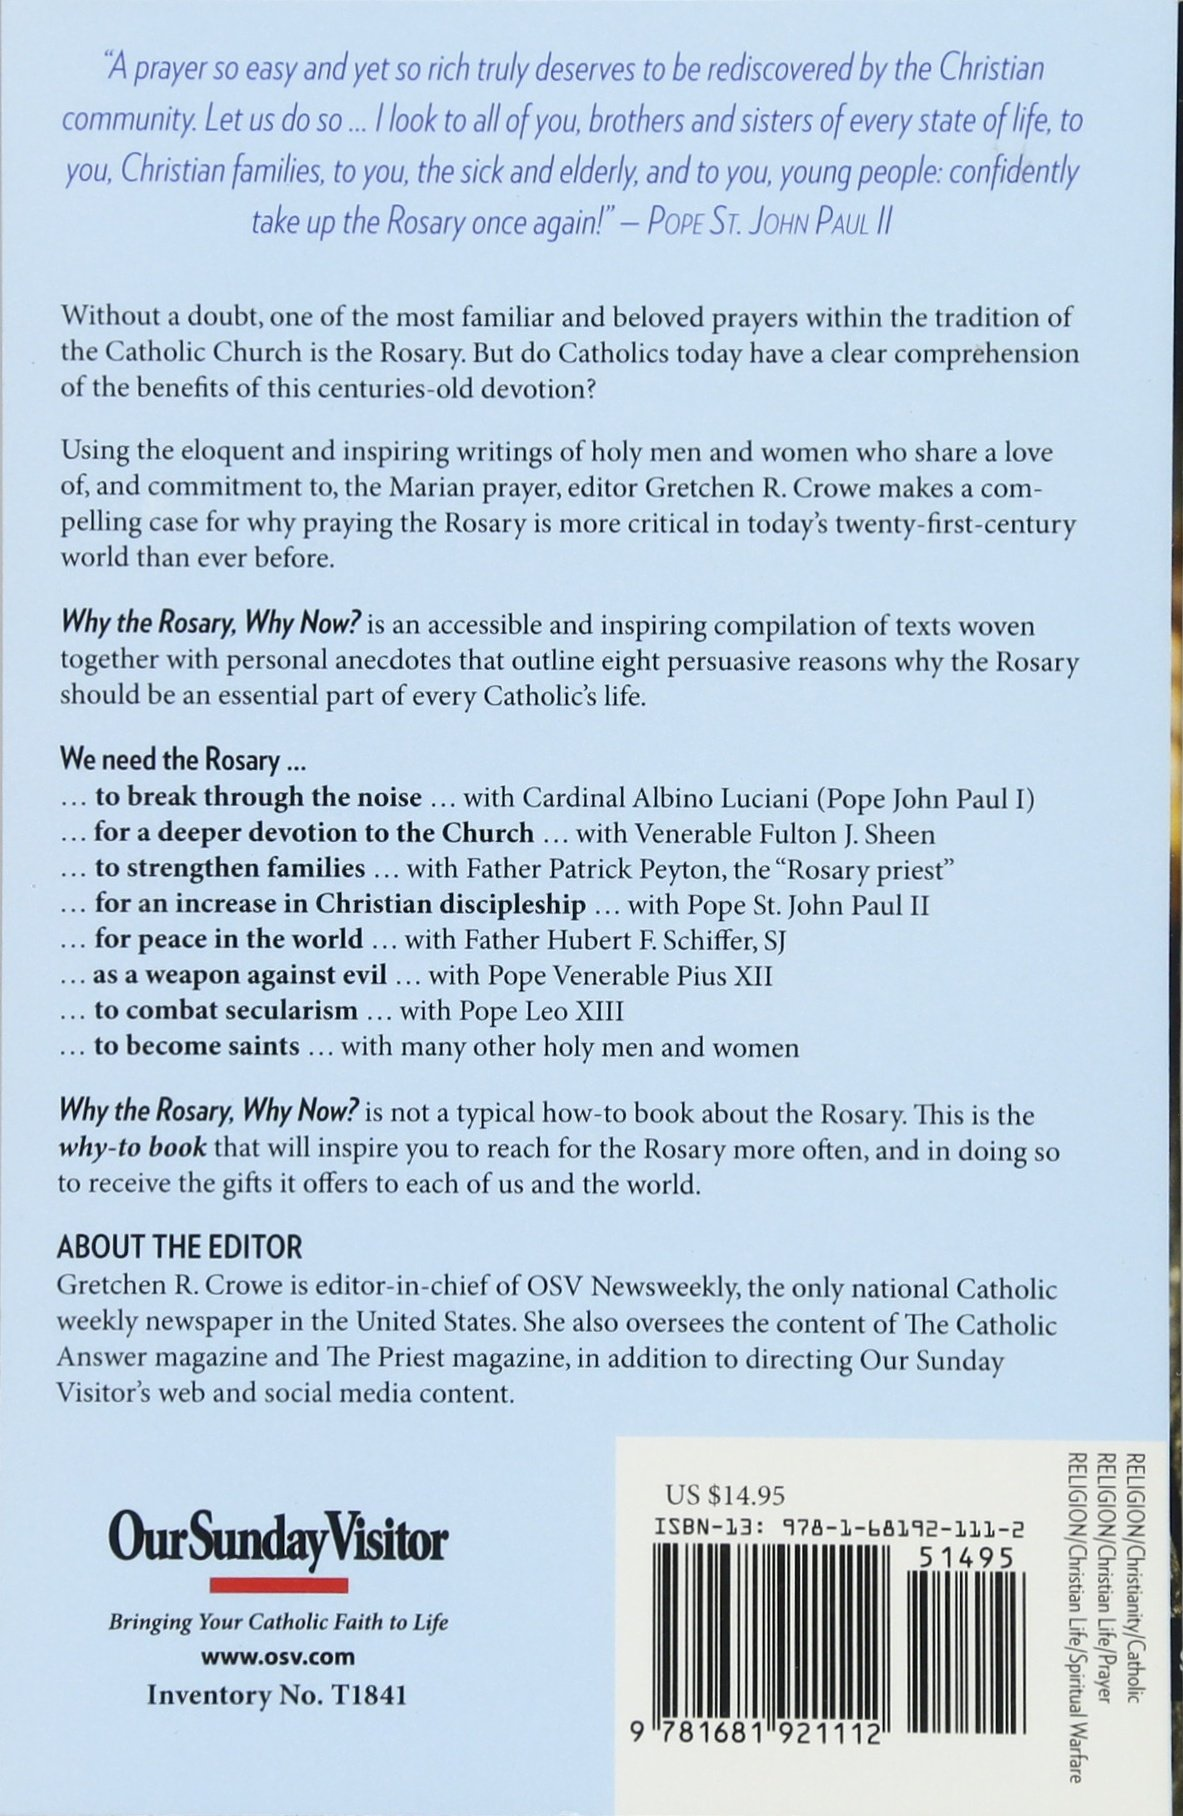 Why the Rosary, Why Now?: Gretchen Crowe: 9781681921112